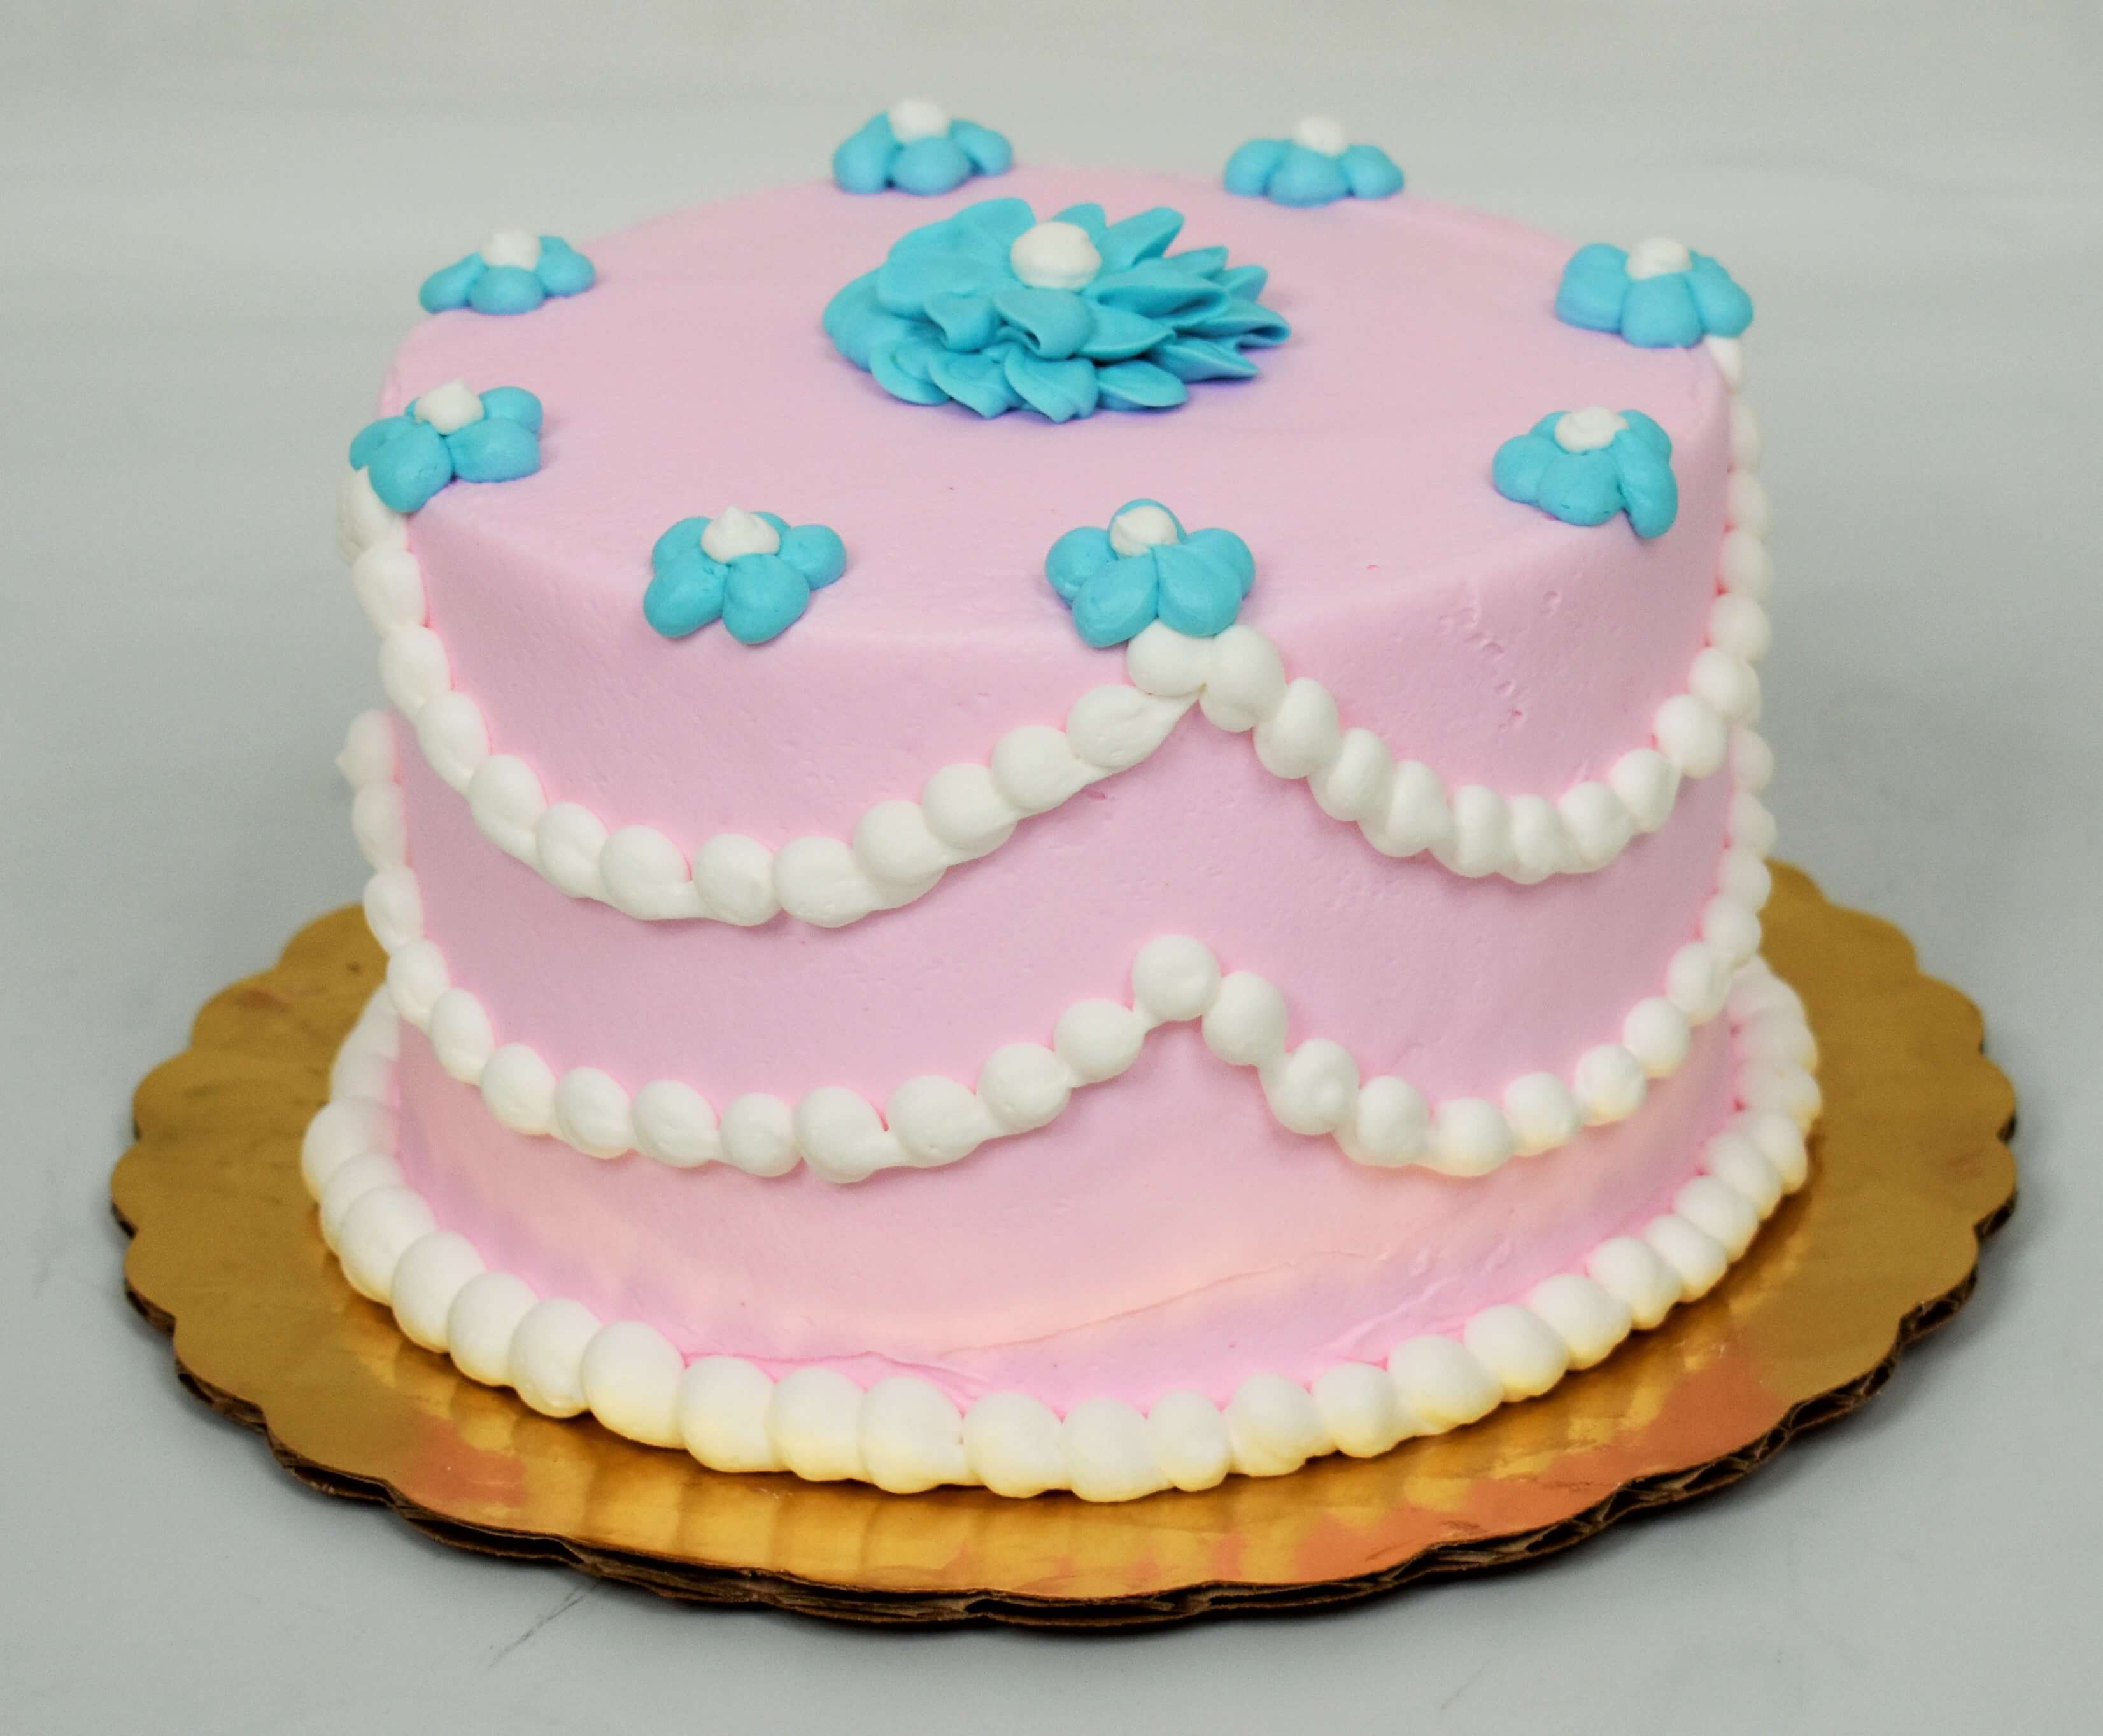 MaArthur's Bakery Custom Cake with Pink Background, White Beaded Draping, and Blue Flowers